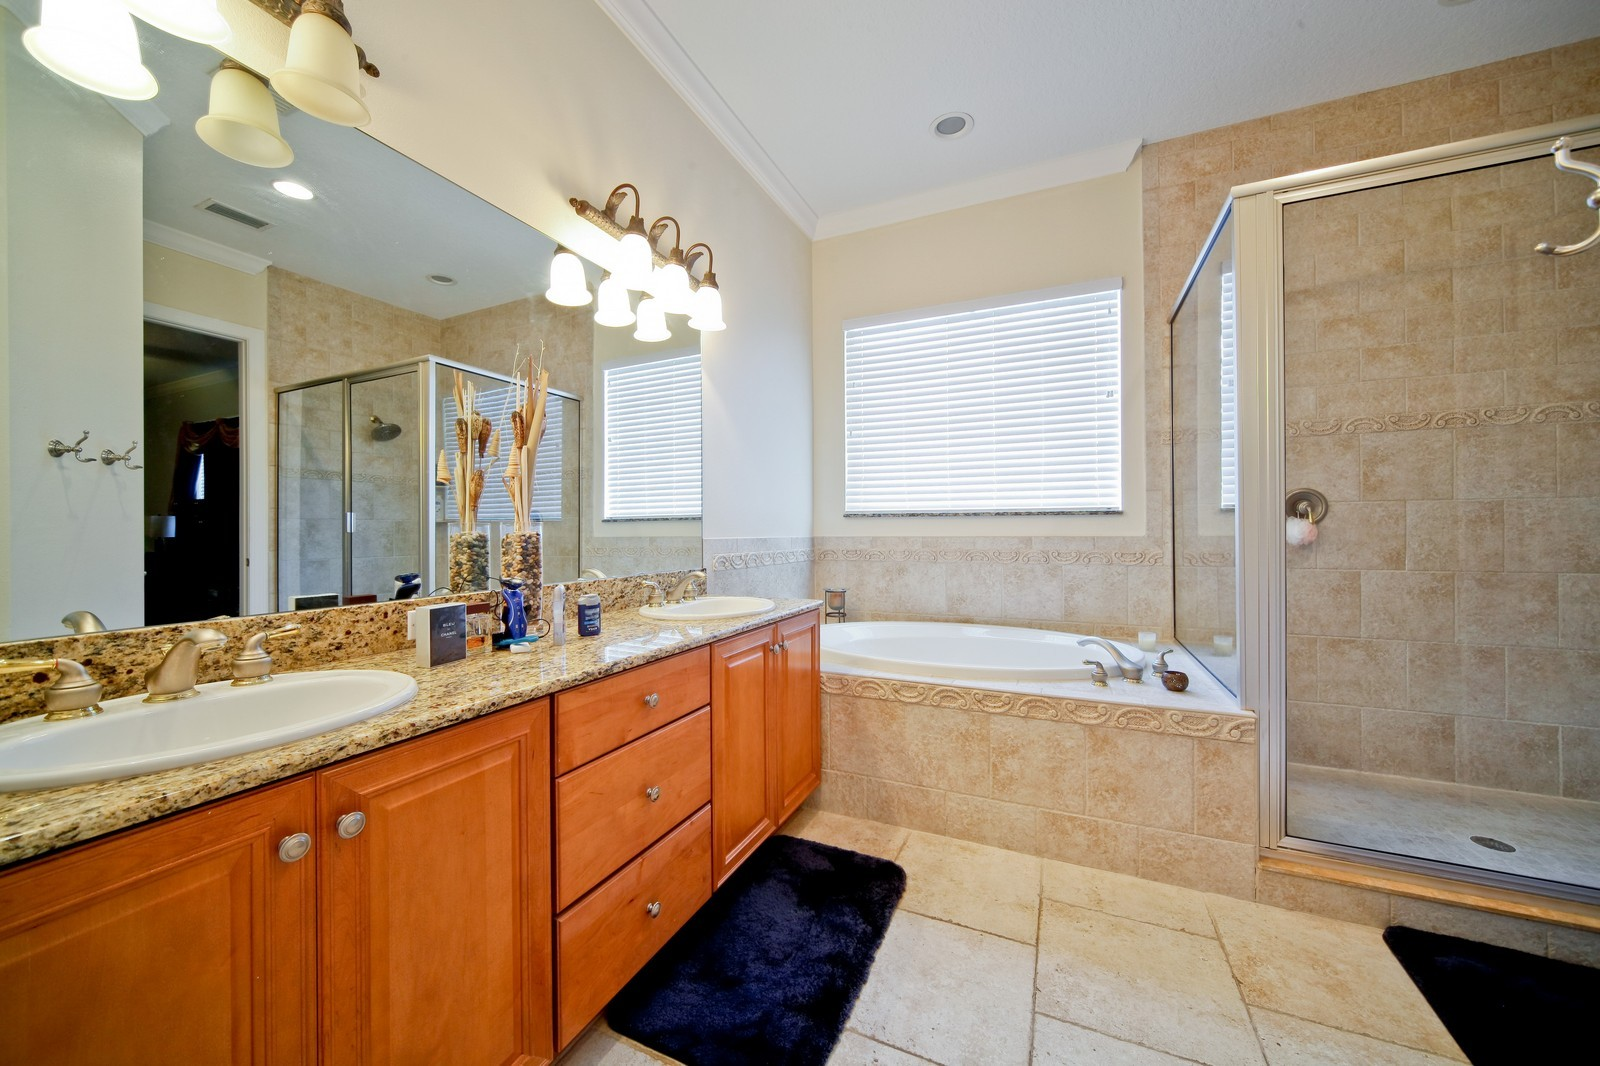 Real Estate Photography - 3812 El Prado Blvd, Tampa, FL, 33629 - Master Bathroom